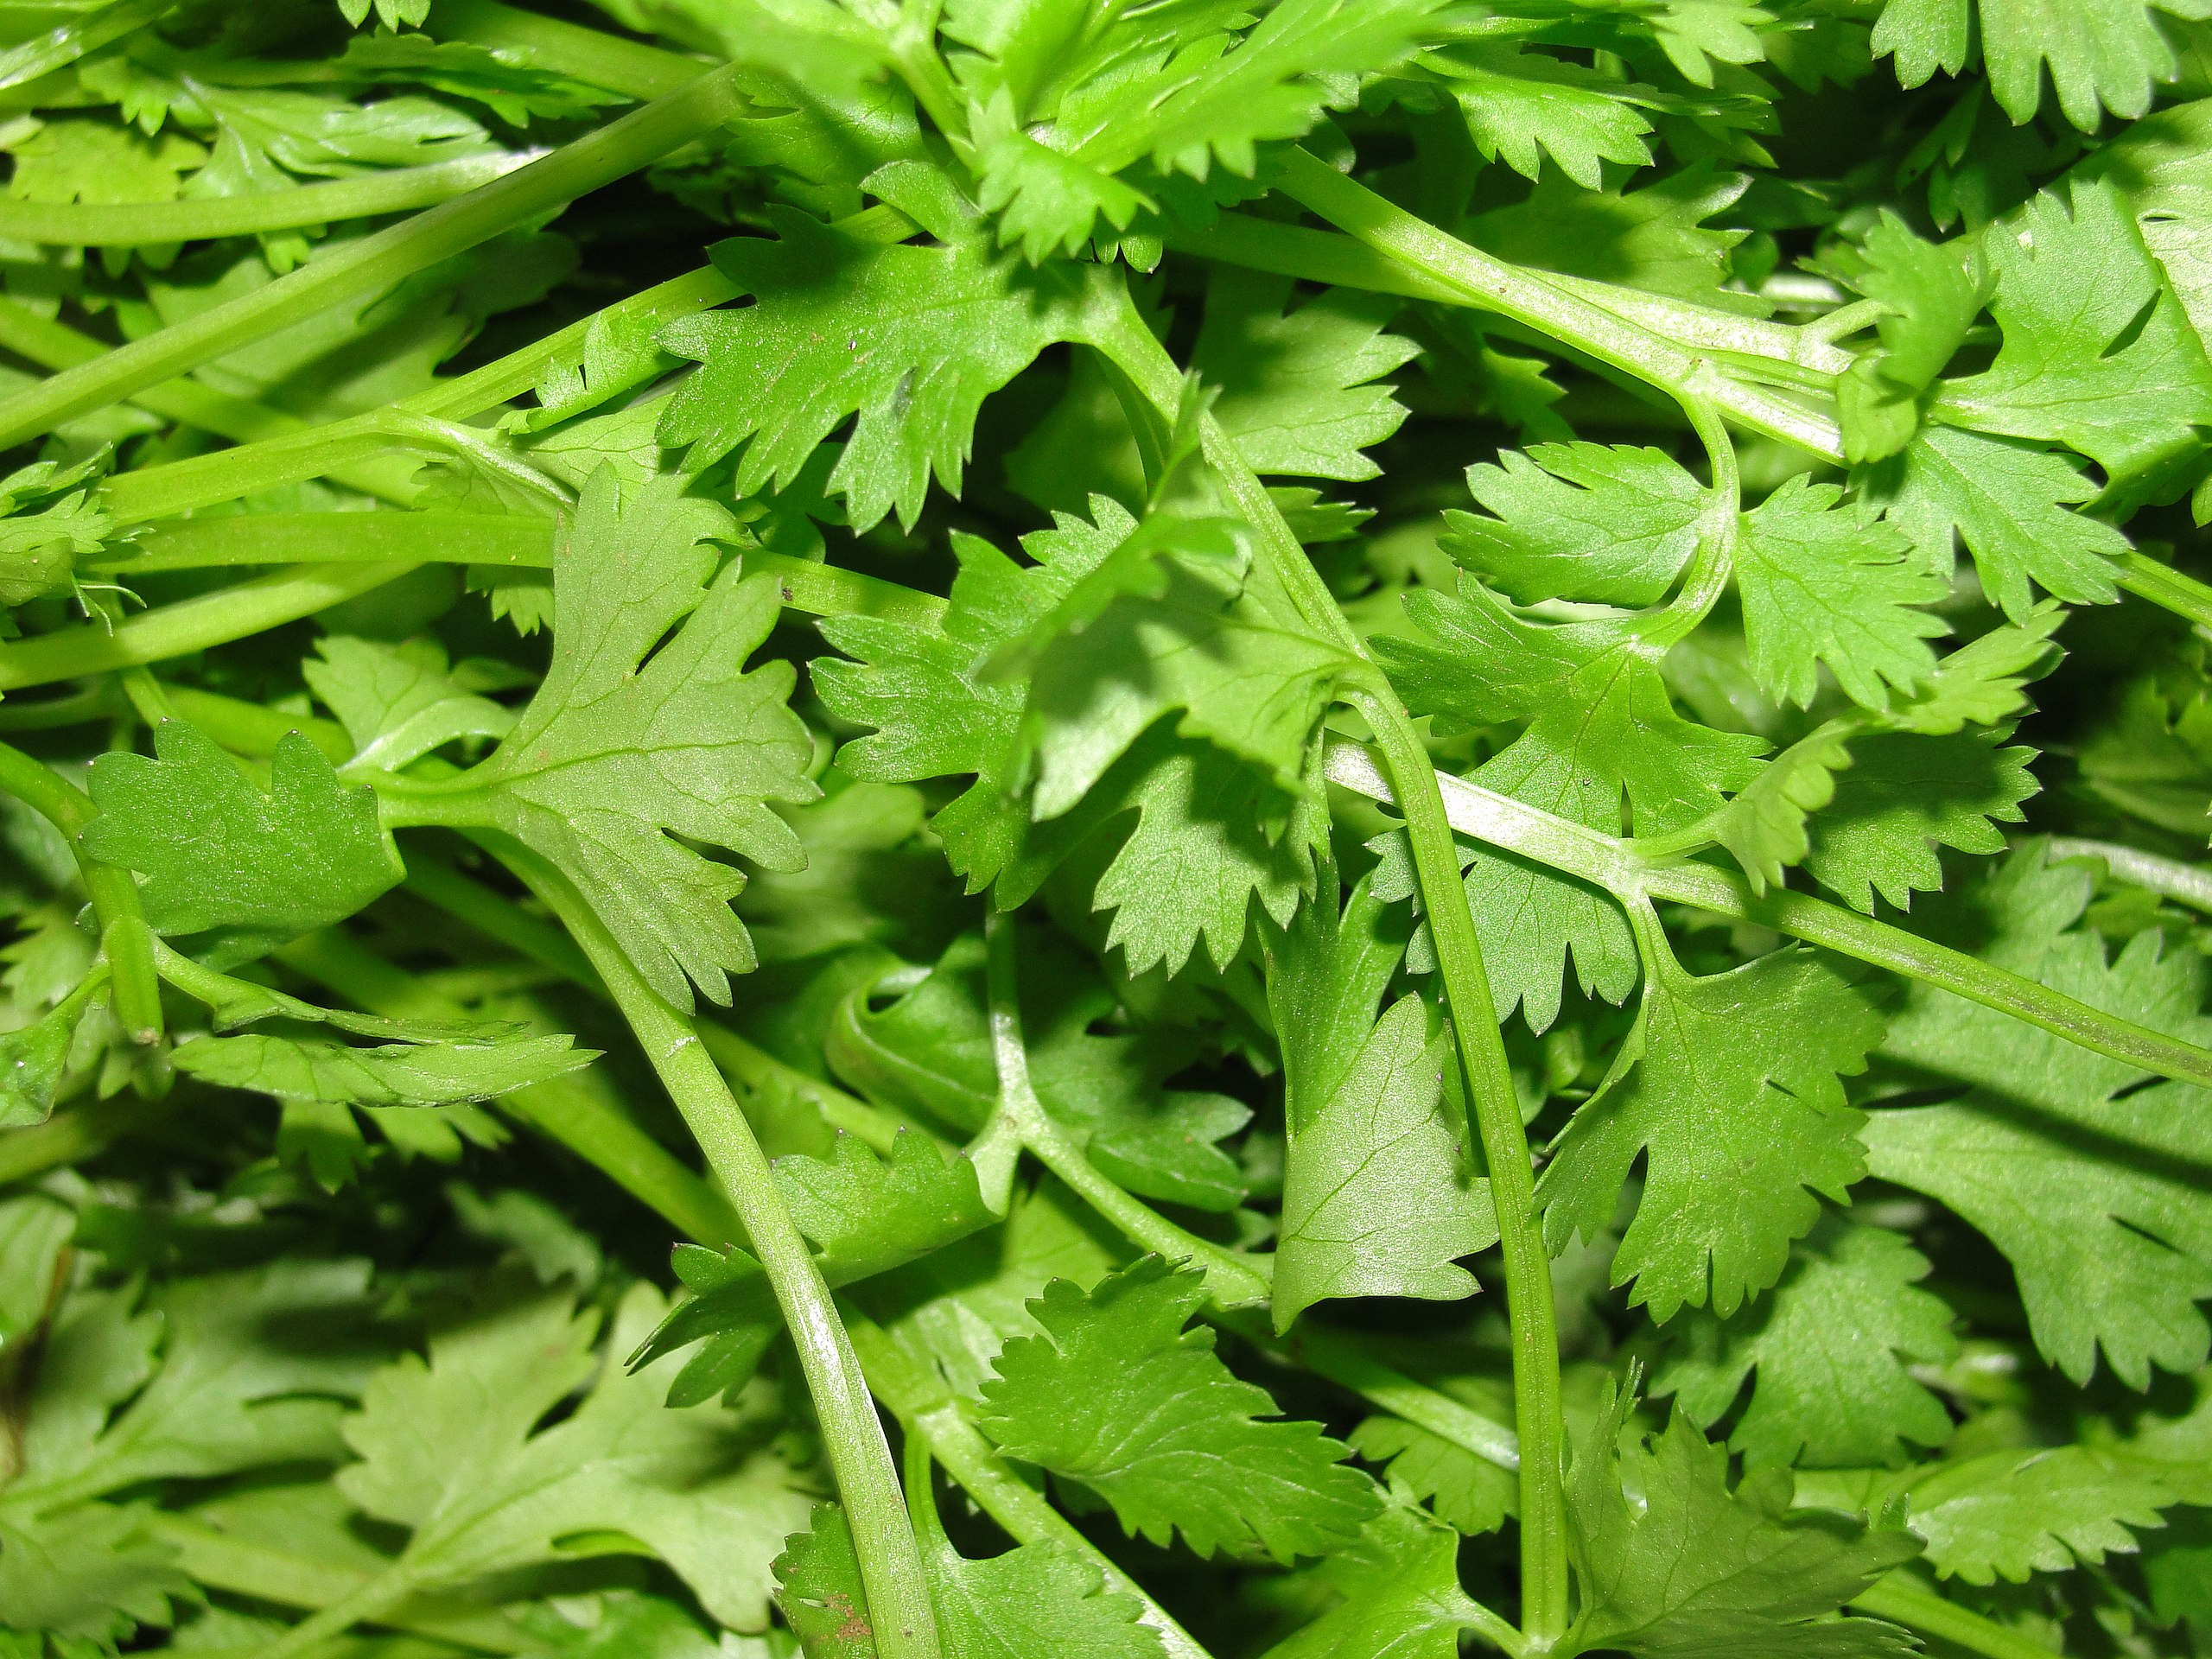 image of cilantro